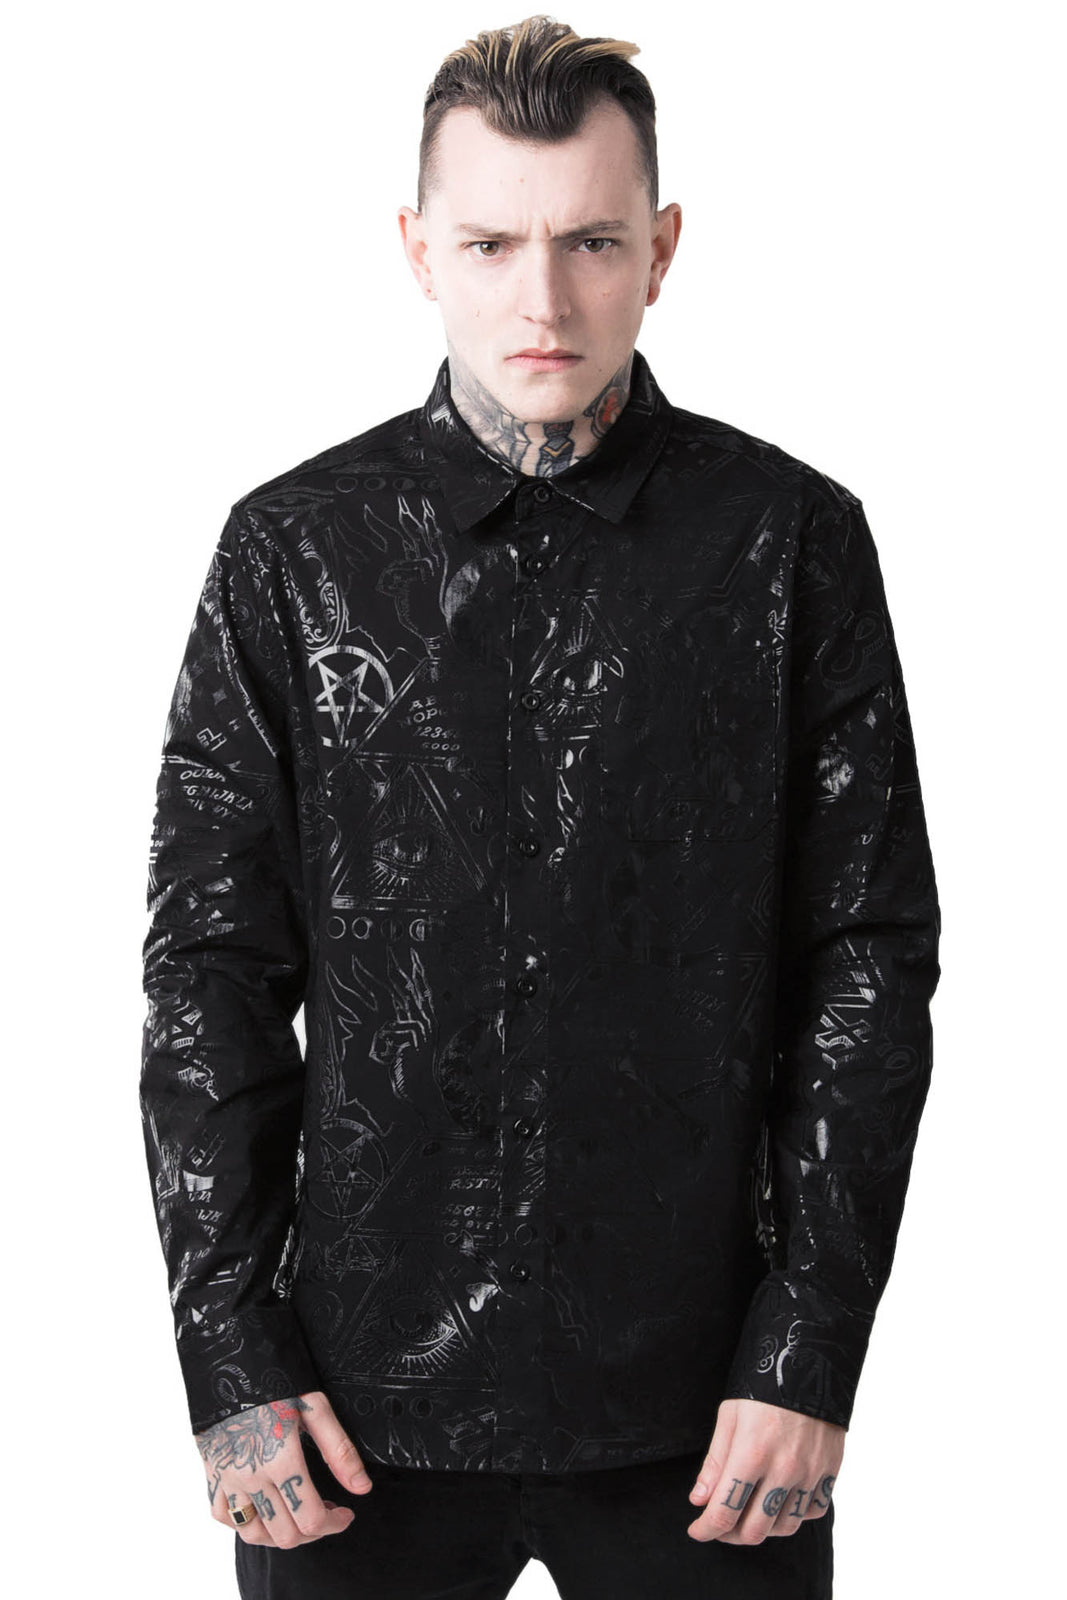 Grave Boy Button-Up Shirt [B]